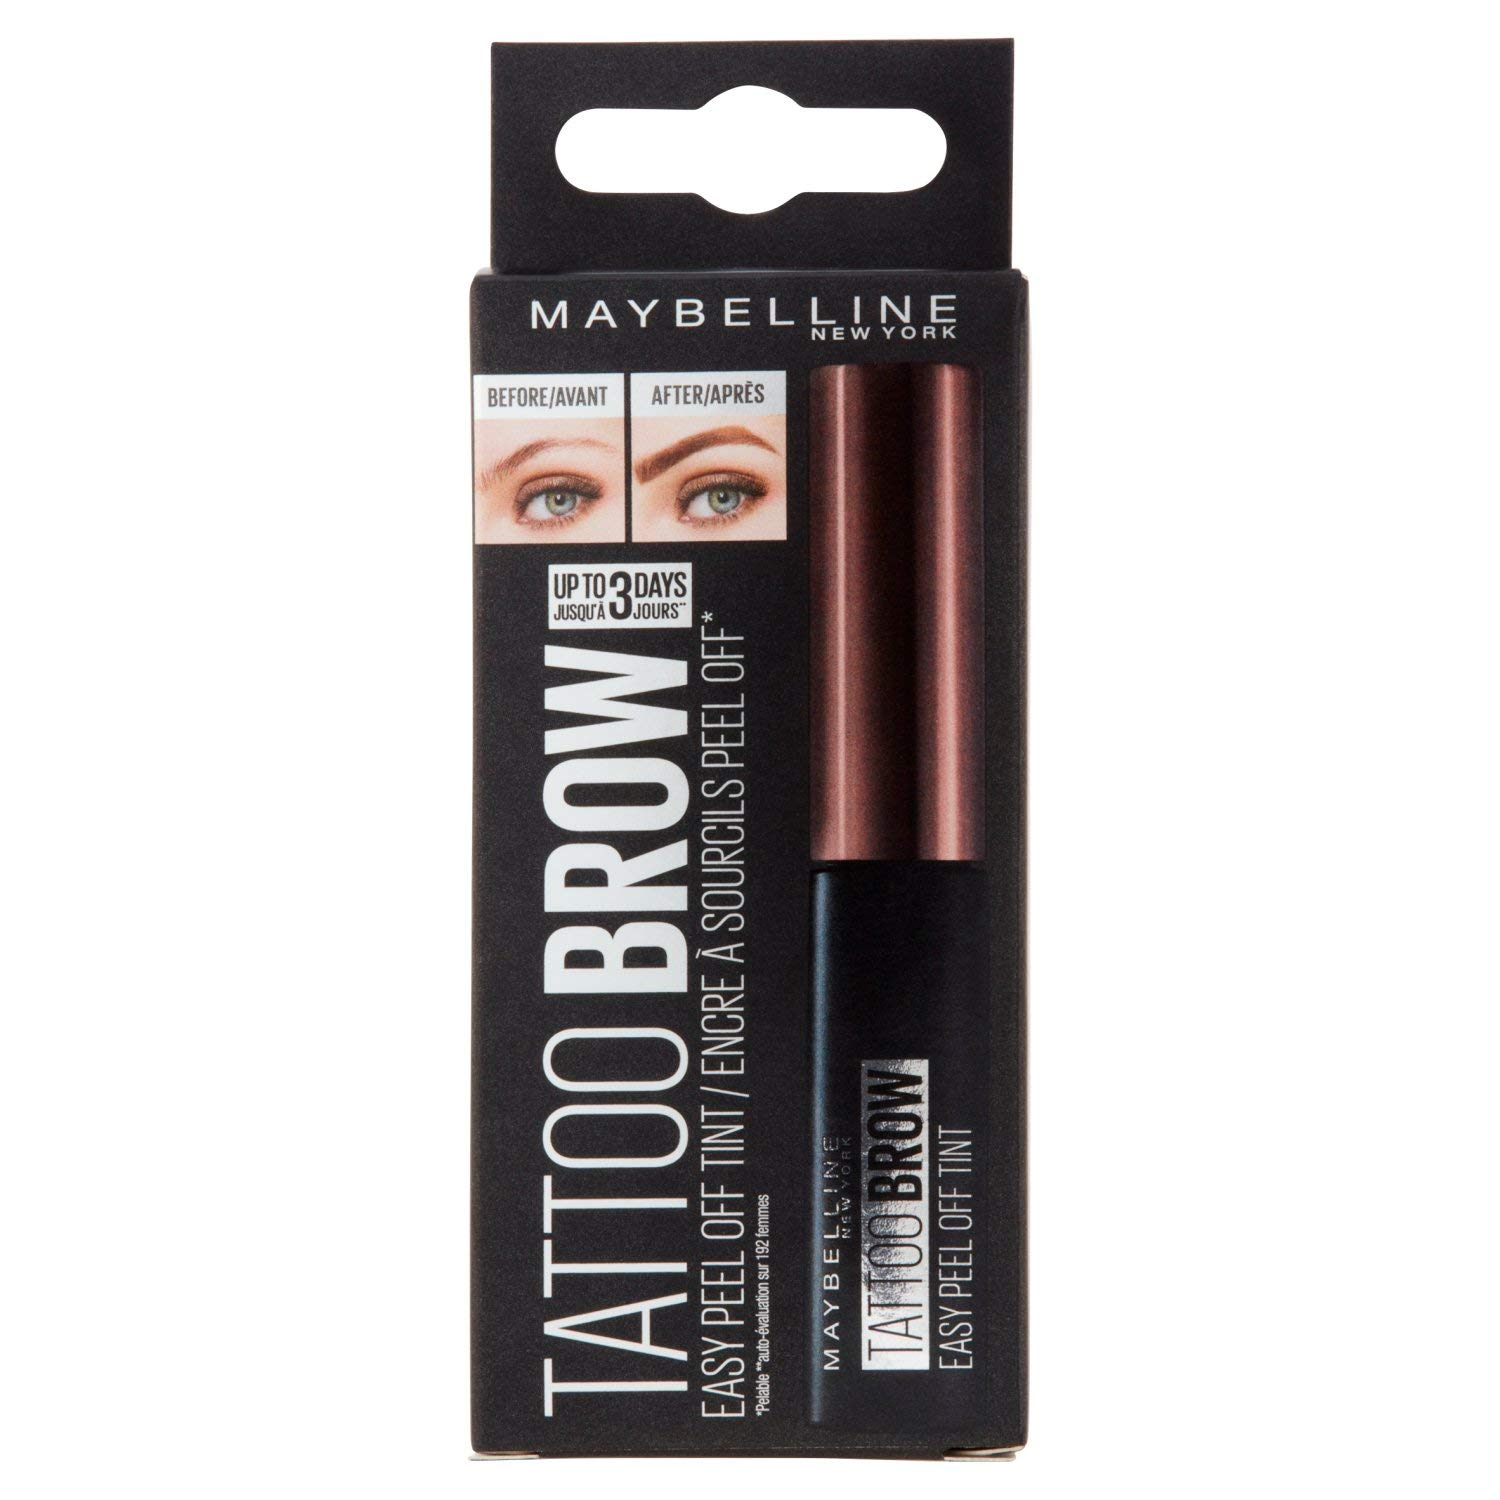 Maybelline New York, Tattoo Brow Long Lasting Tint